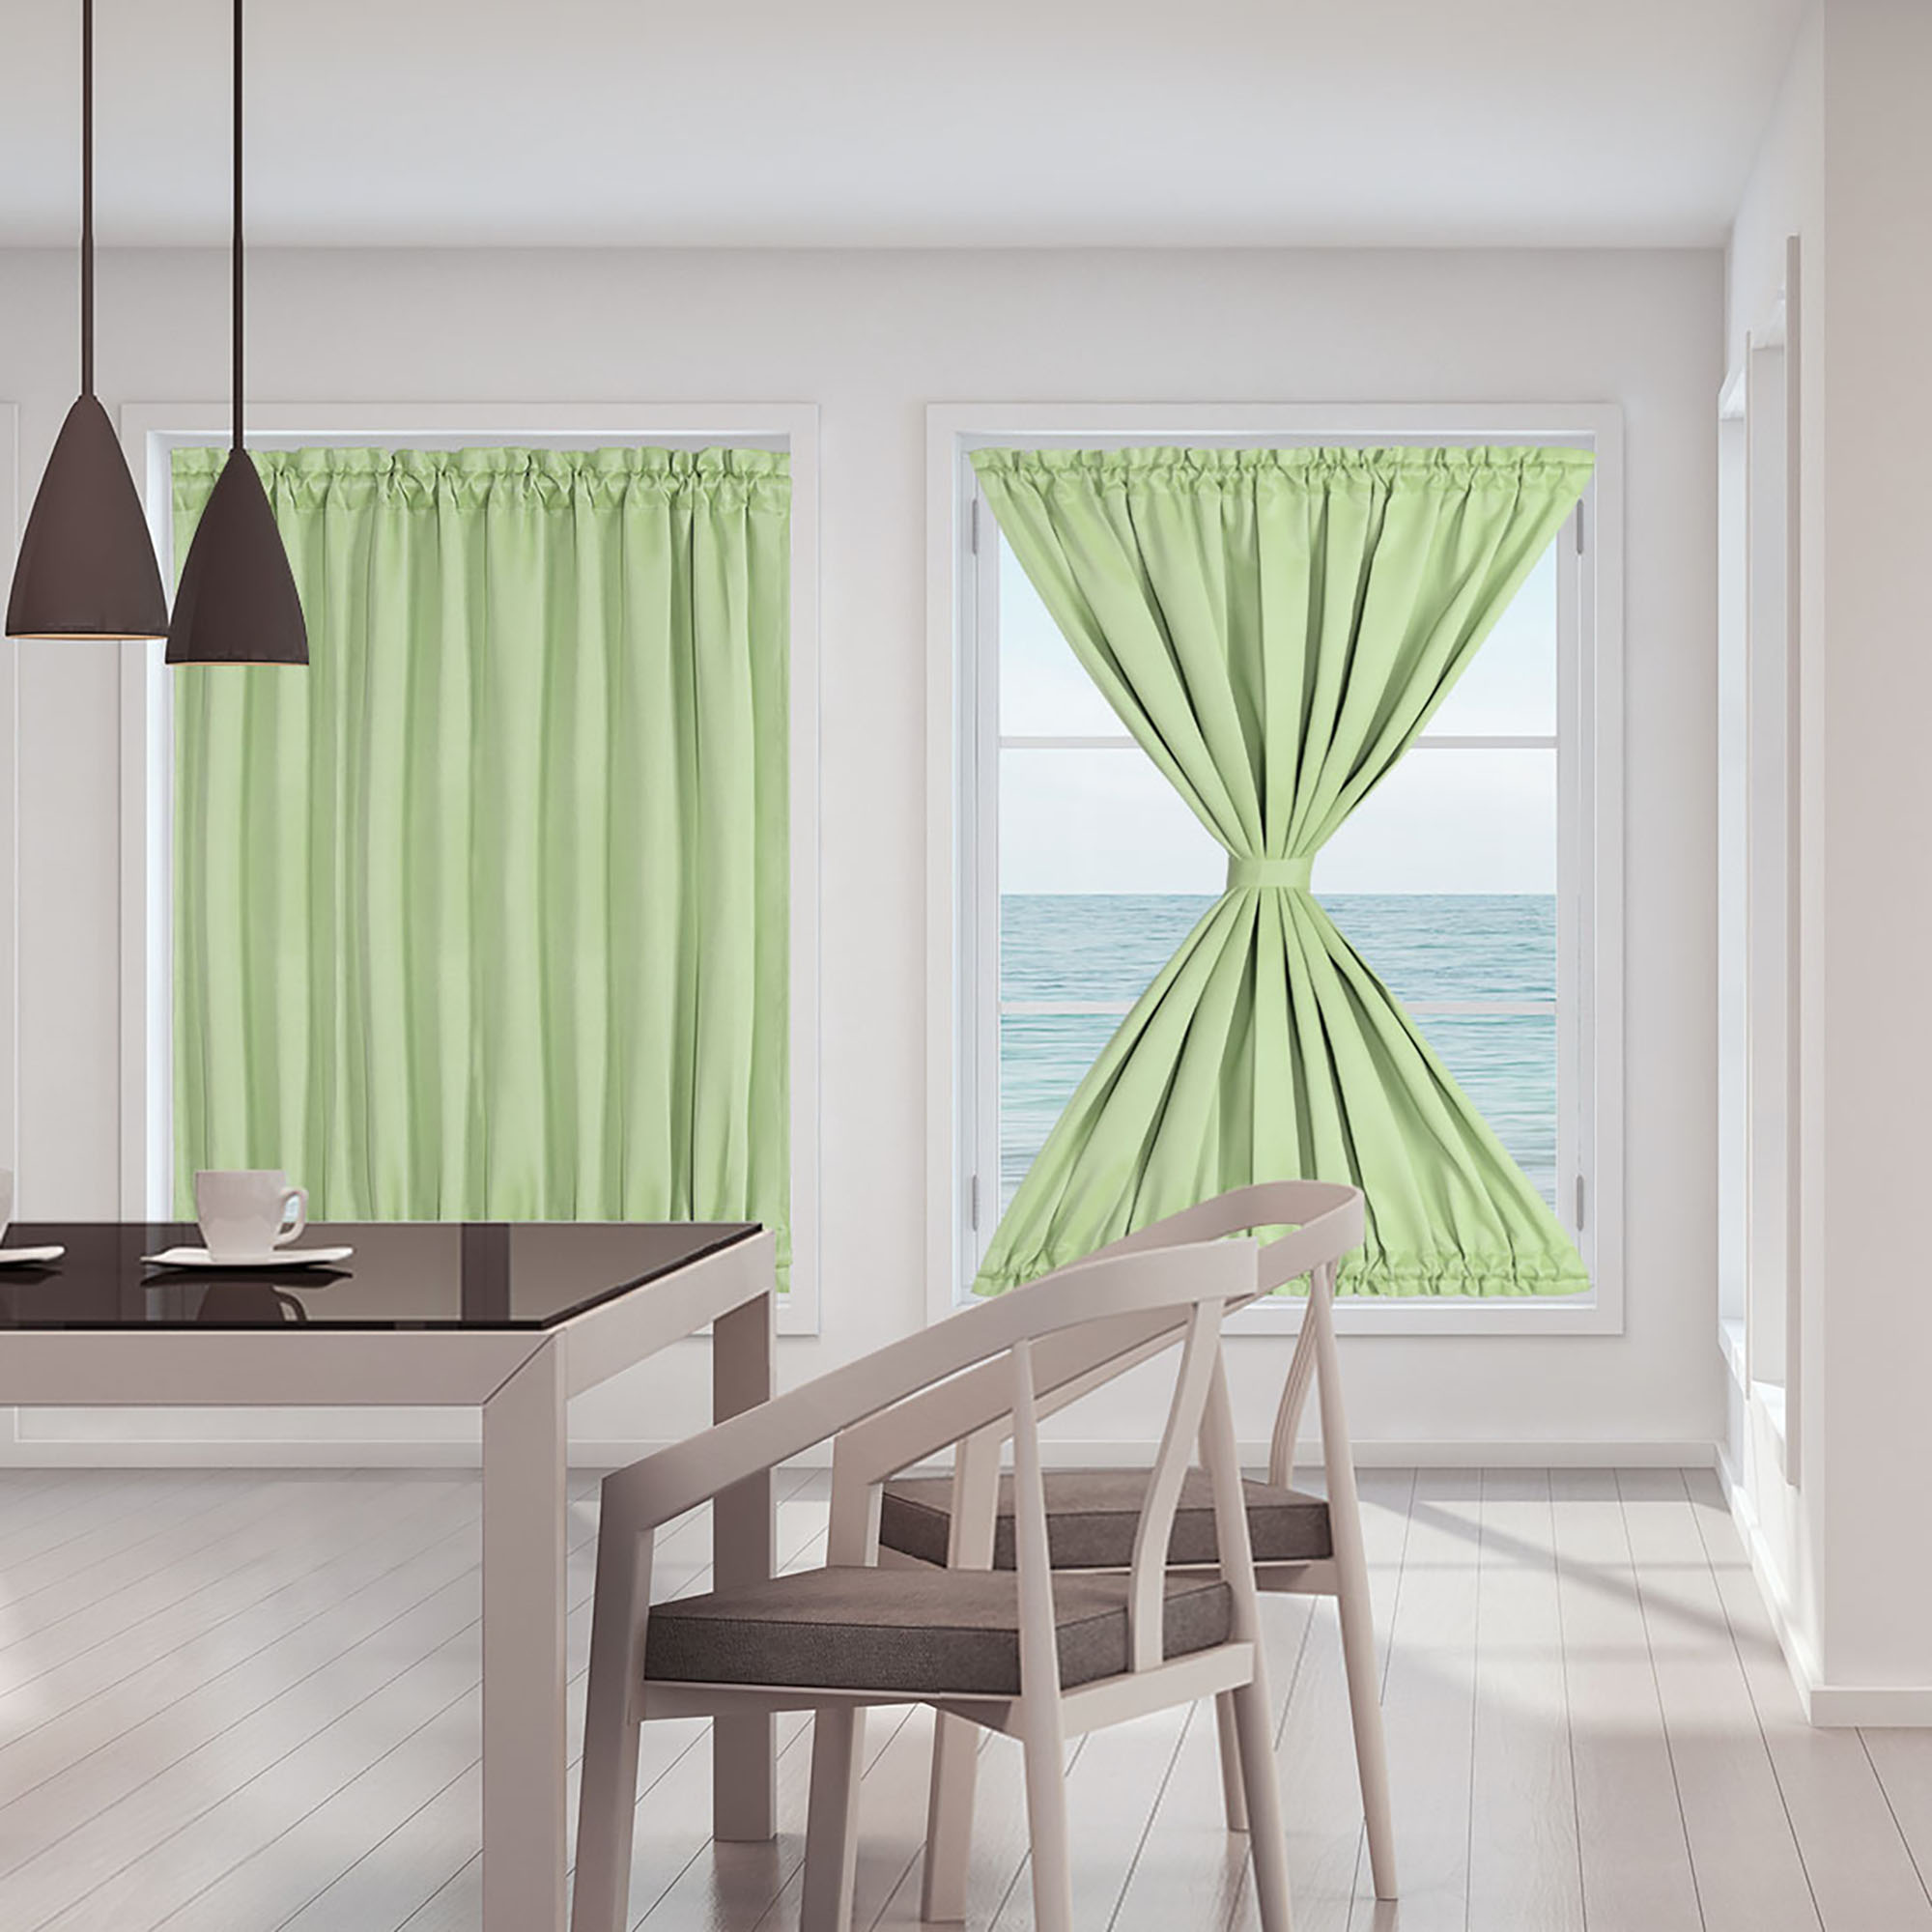 French Door Curtains Thermal Insulated Blackout Curtain Rod Door Curtain Panel 2 Panels Green 25 X 40 Walmart Com Walmart Com